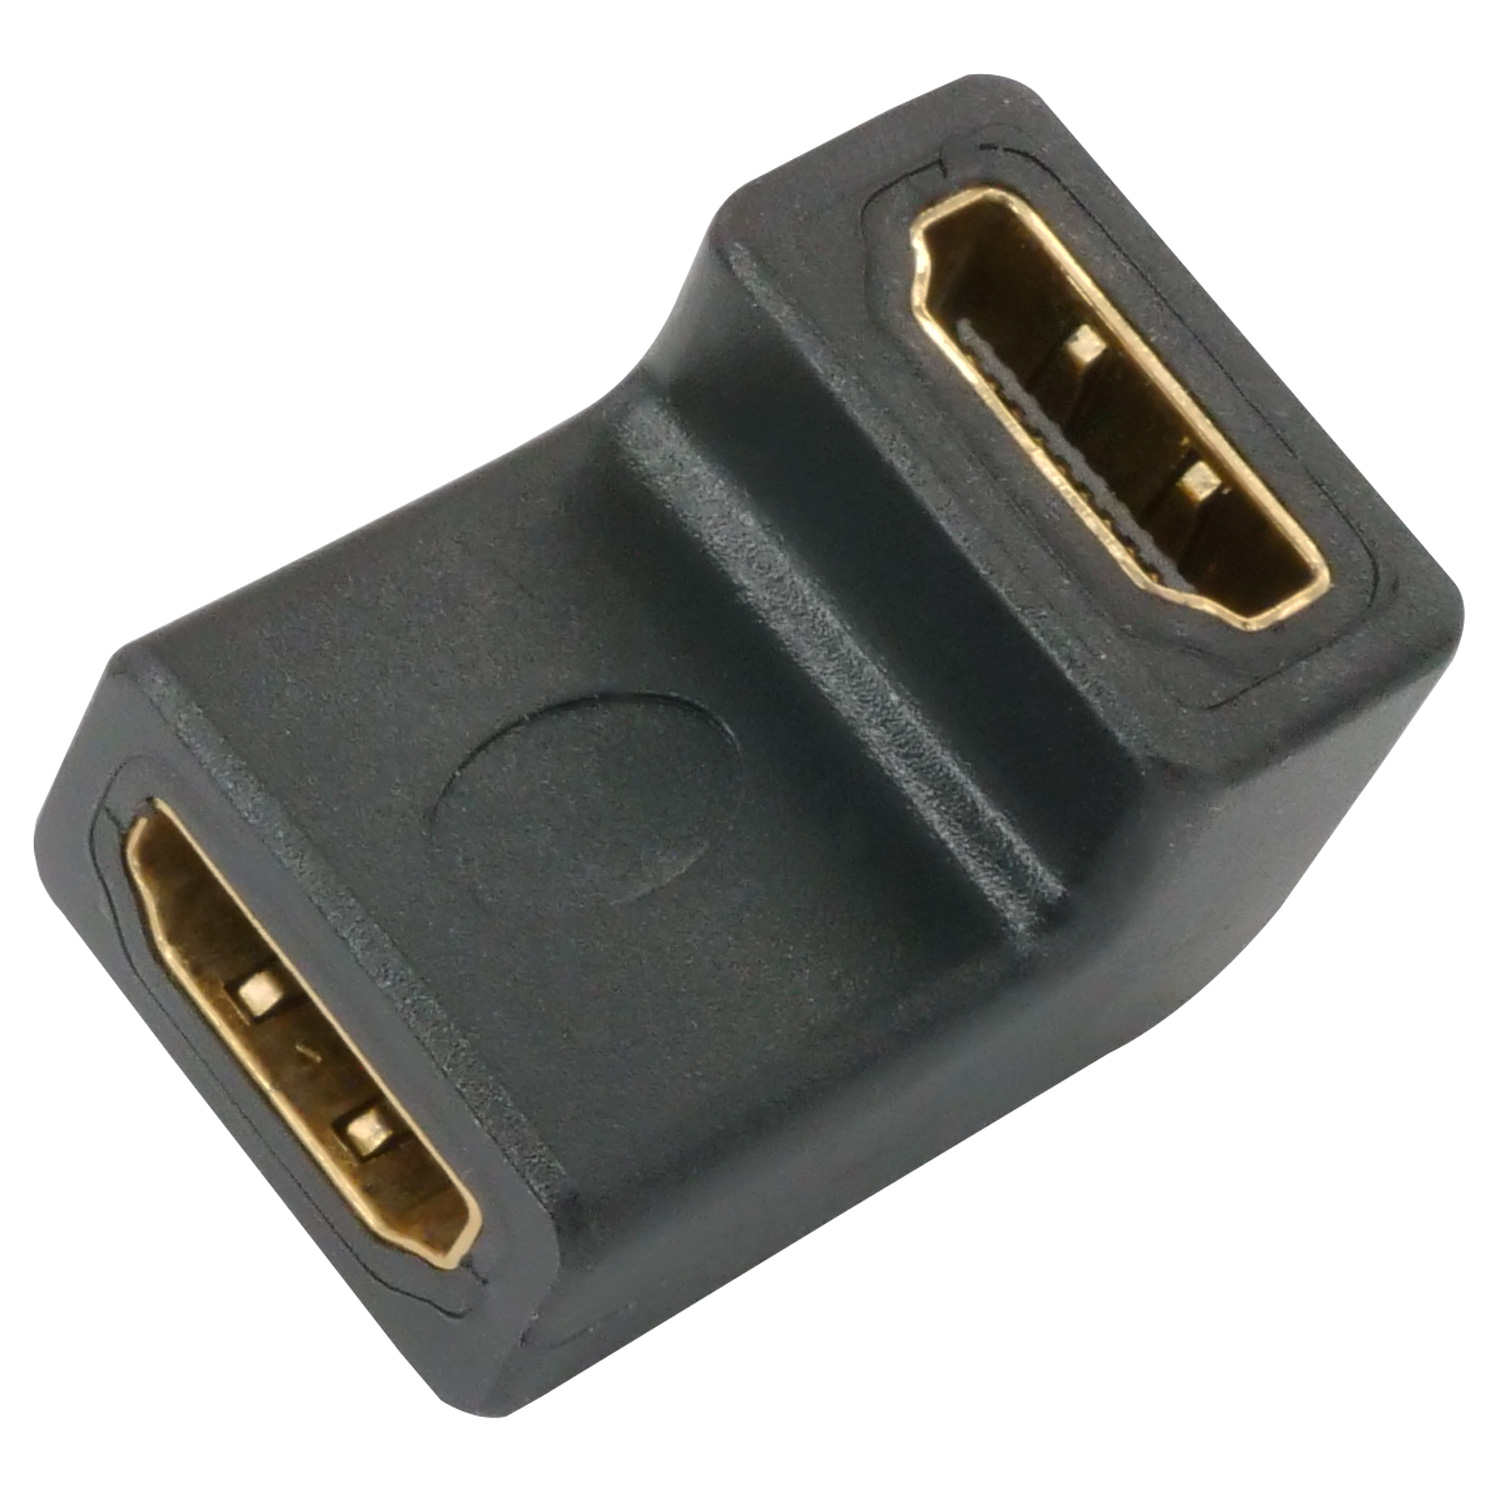 HDMI Right-Angle Female to Female Video Adapter / Gender Changer